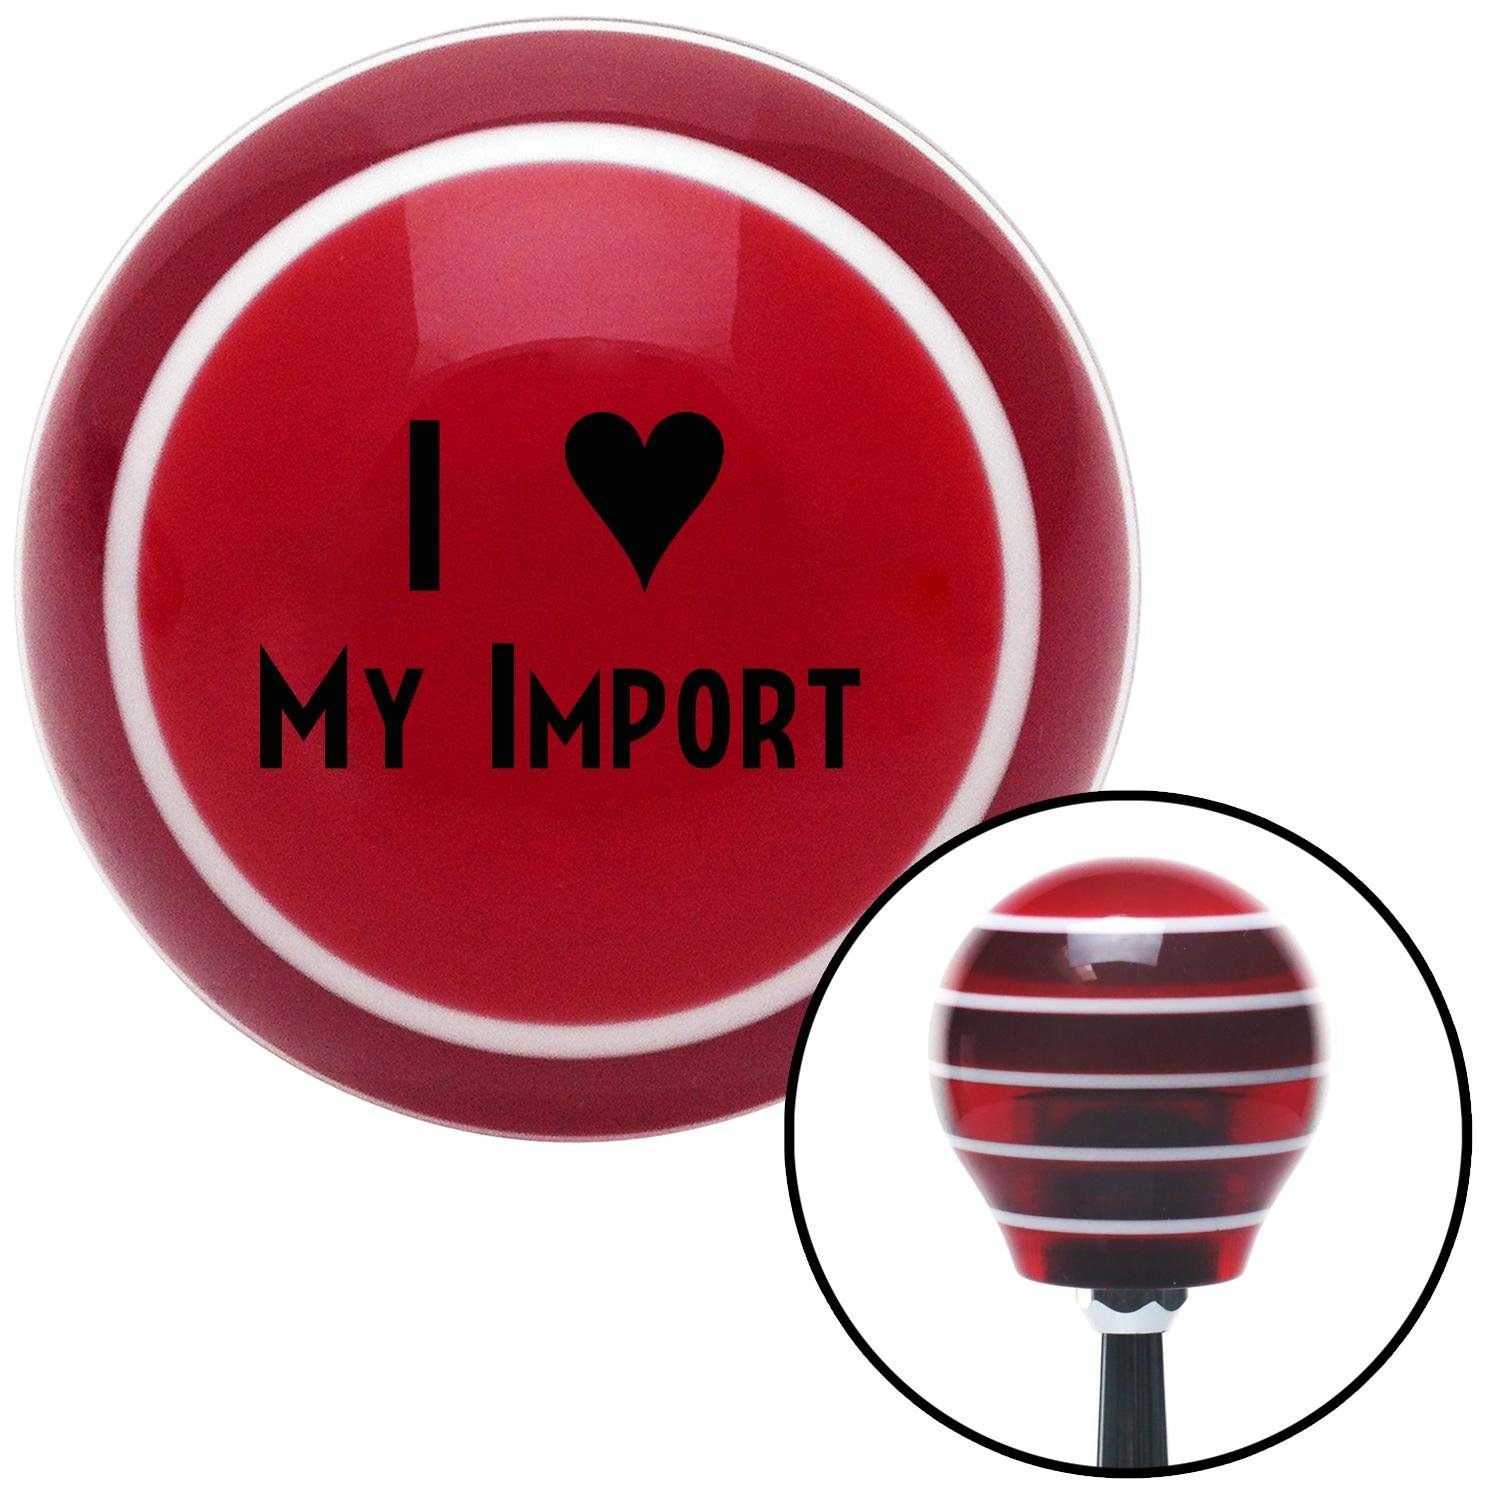 Black I 3 My Import American Shifter 114341 Red Stripe Shift Knob with M16 x 1.5 Insert